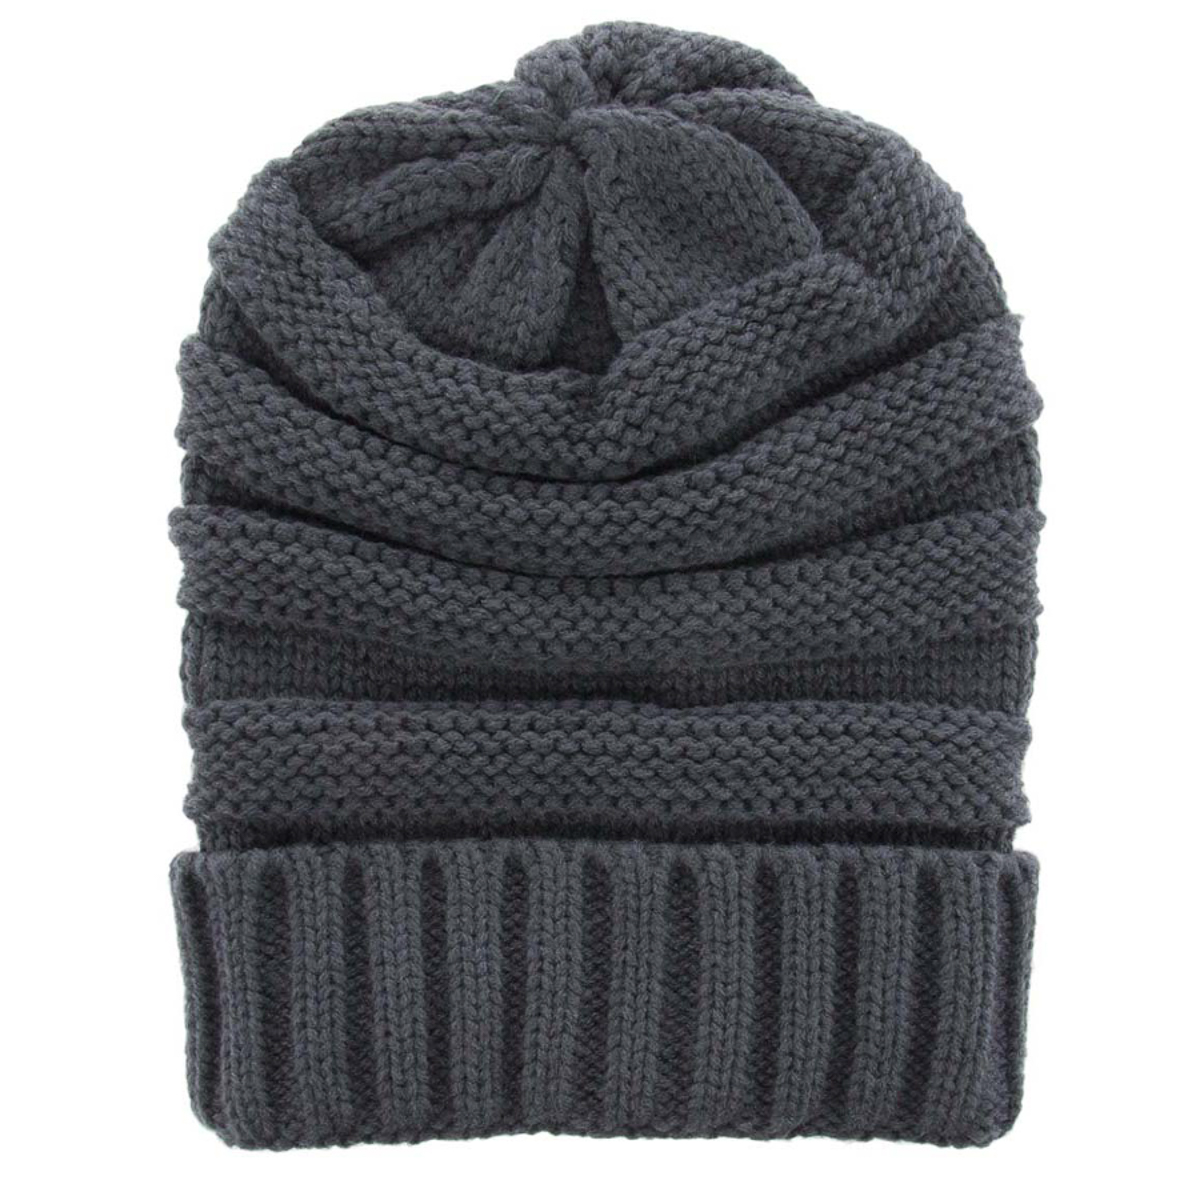 Womens-Slouchy-Ribbed-Knit-Chunky-Beanie-Winter-Hat-Warm-Cute-Lightweight-Chic thumbnail 30